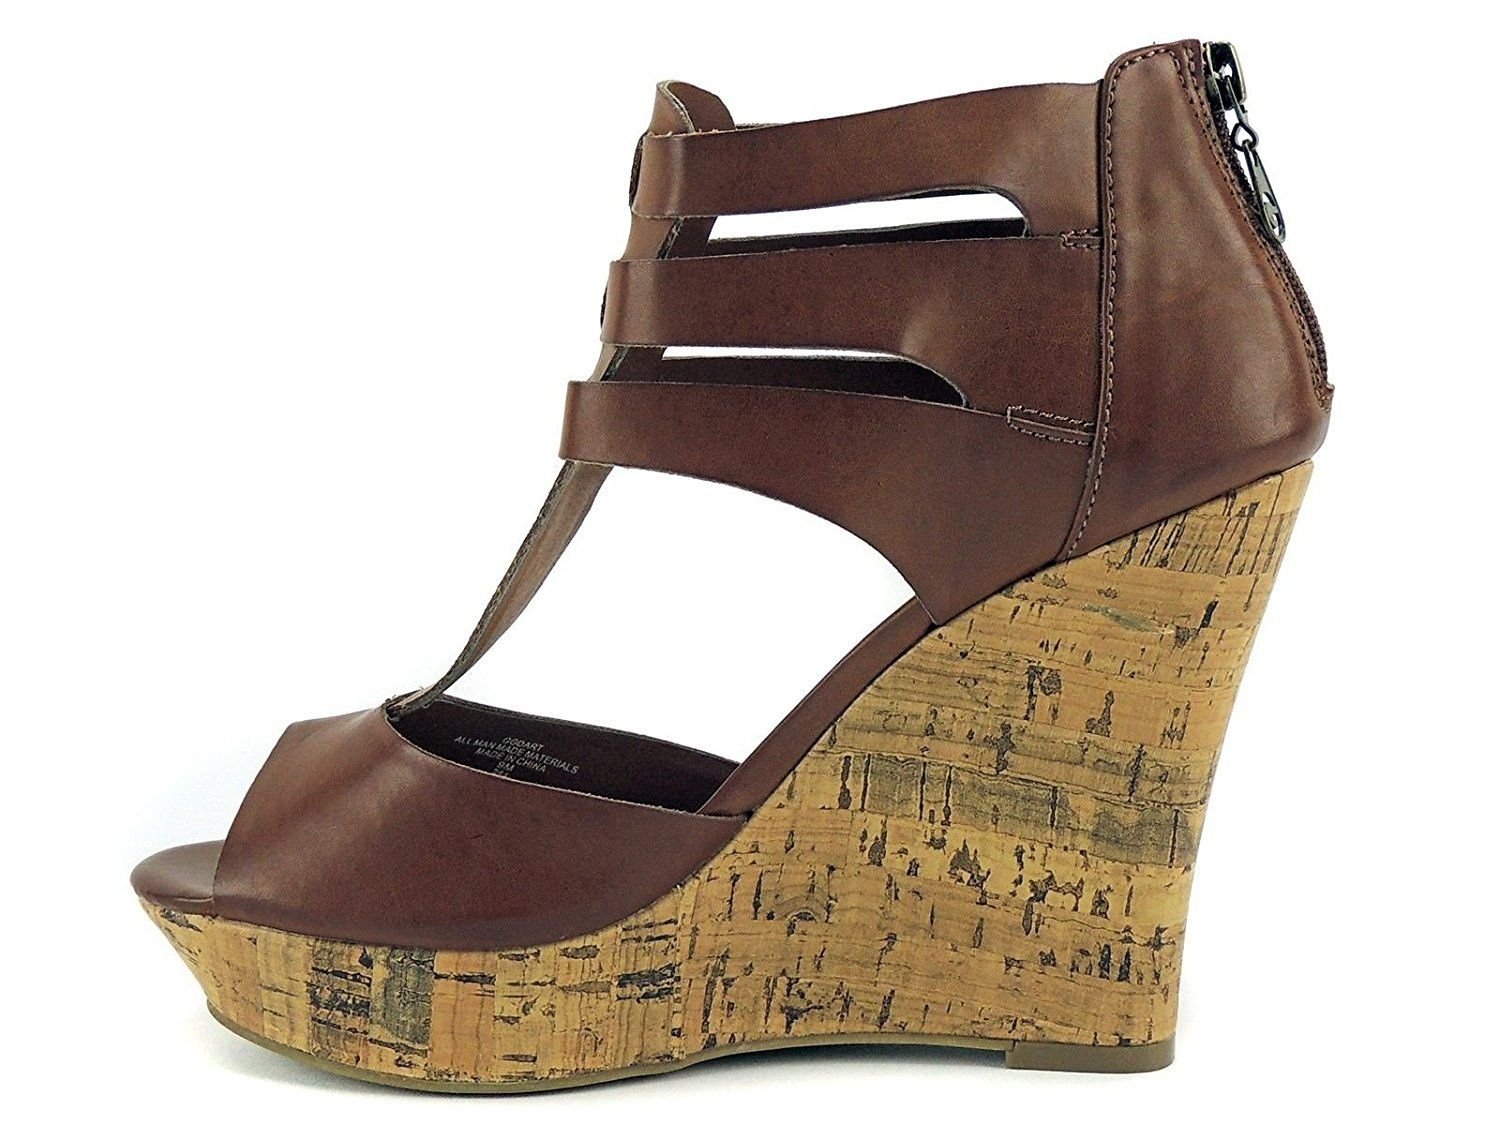 Women's Size 9.5 Shoes Carved Wedges Heel Decorative Design Top Straps